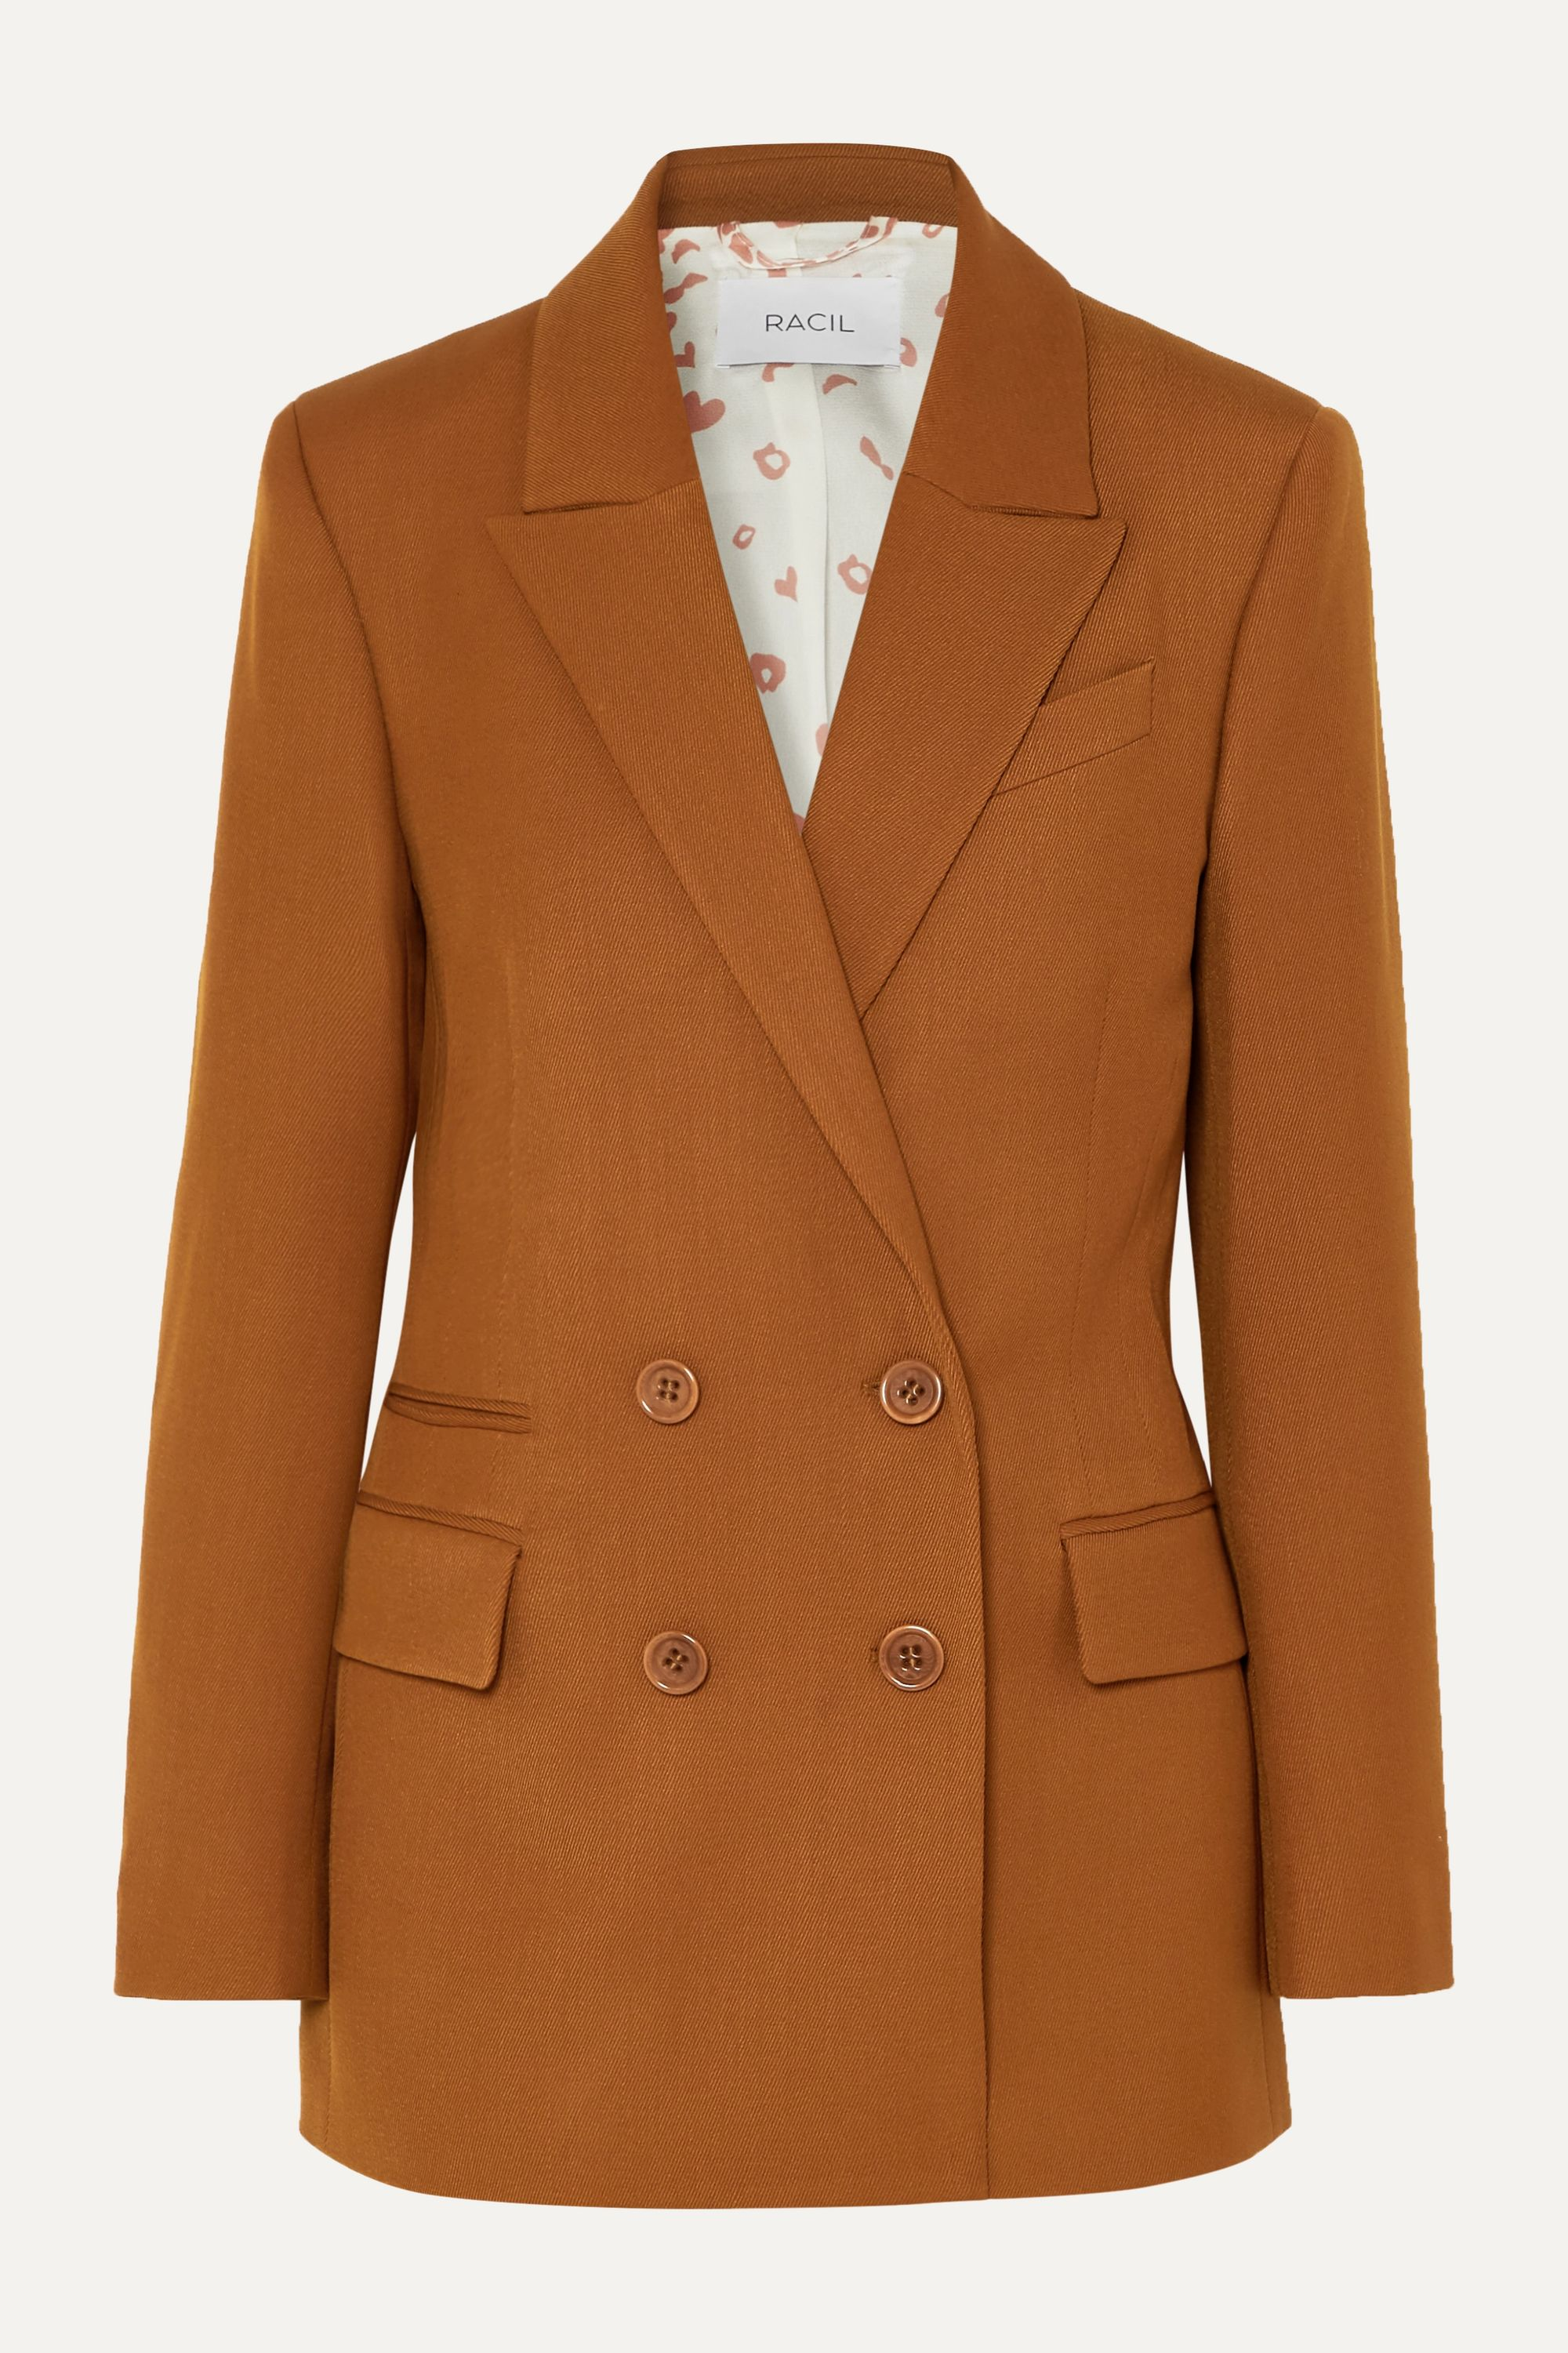 Racil Archie double-breasted crepe blazer